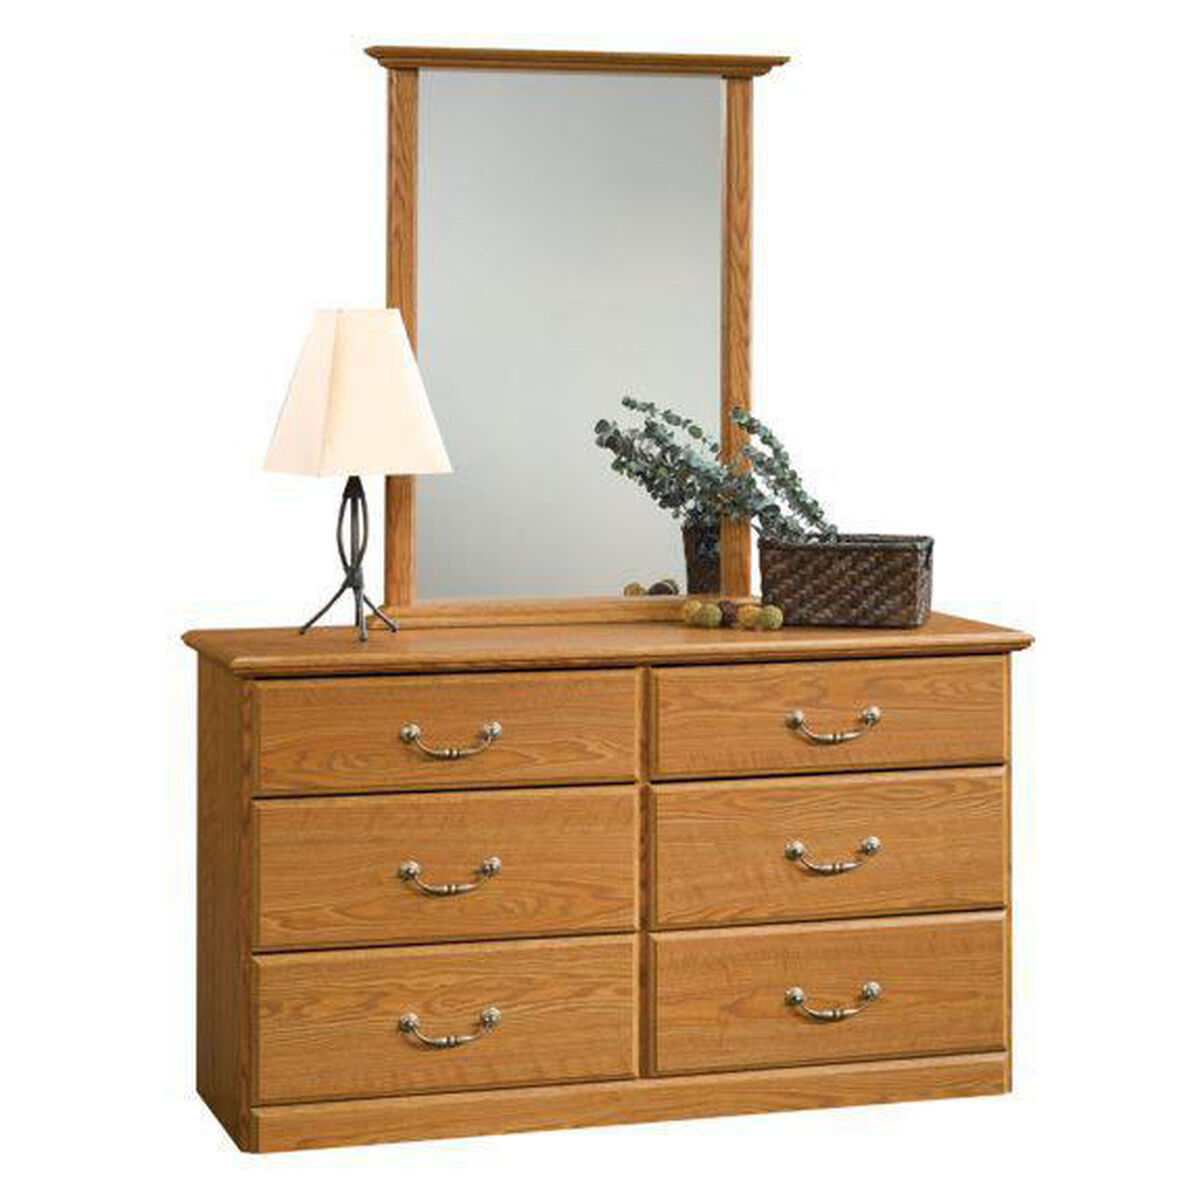 Our Orchard Hills 50 875 W Chest Of Drawers Carolina Oak Is On